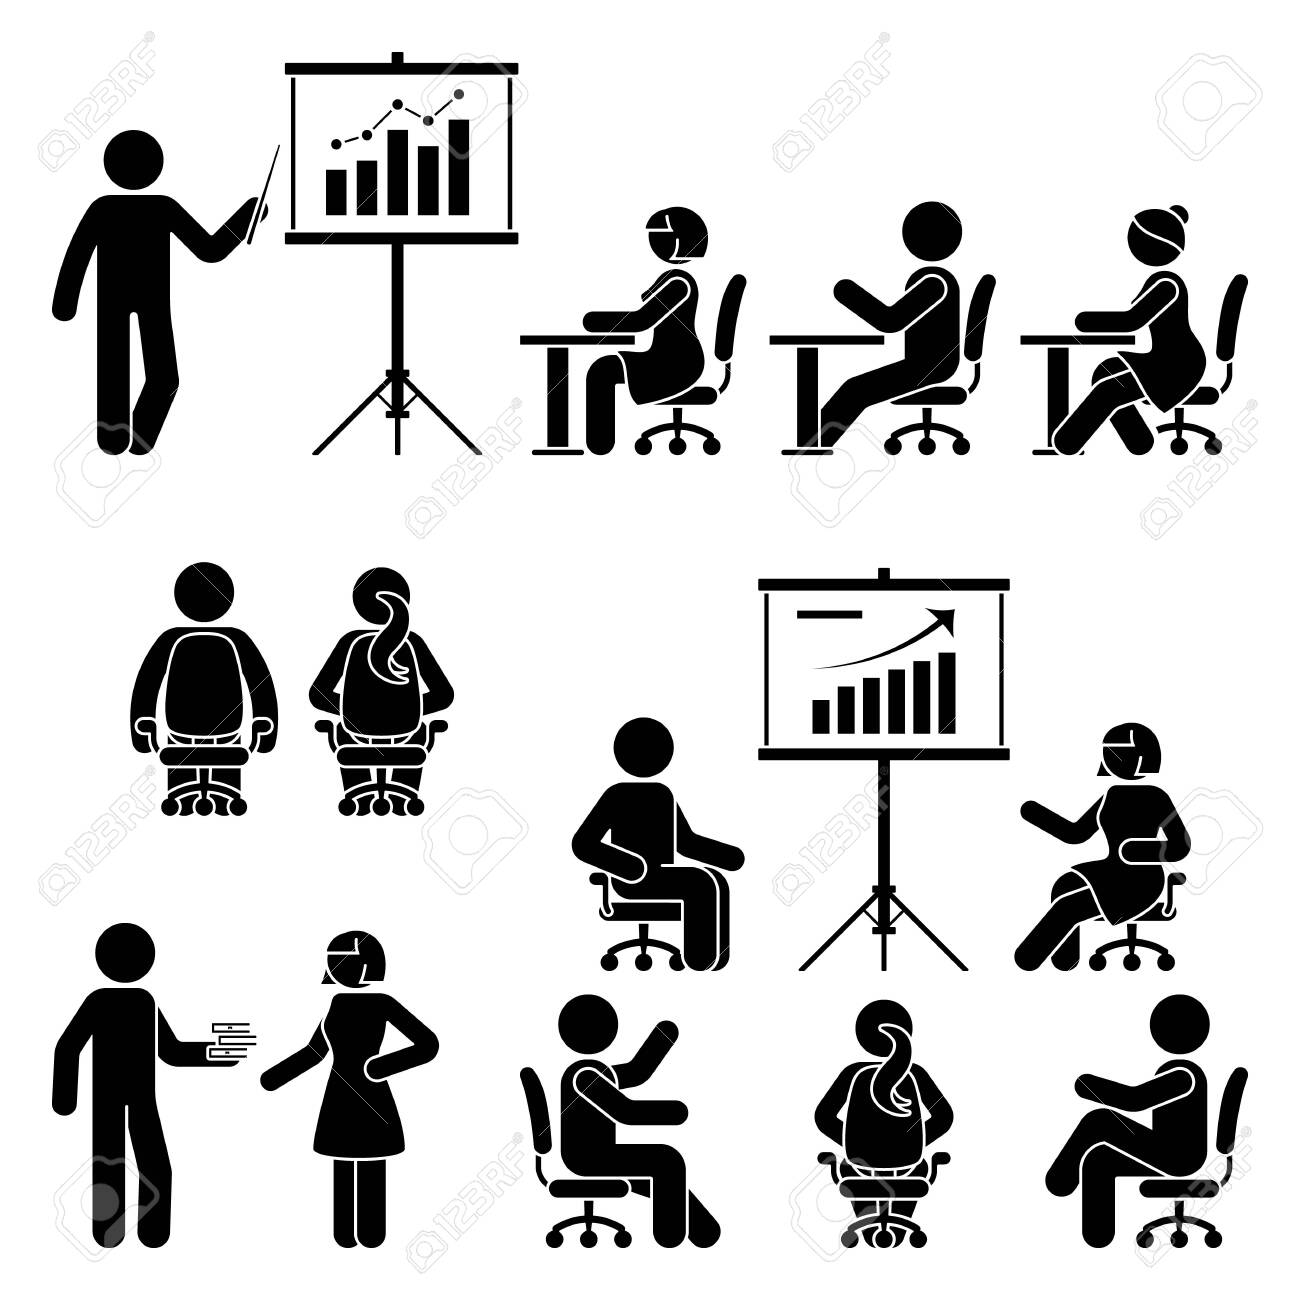 Stick figure man, woman teaching, training, studying workshop, lesson, conference, meeting vector icon set. Male, female, student, employee at office, school, class, course people silhouette on white - 142988139